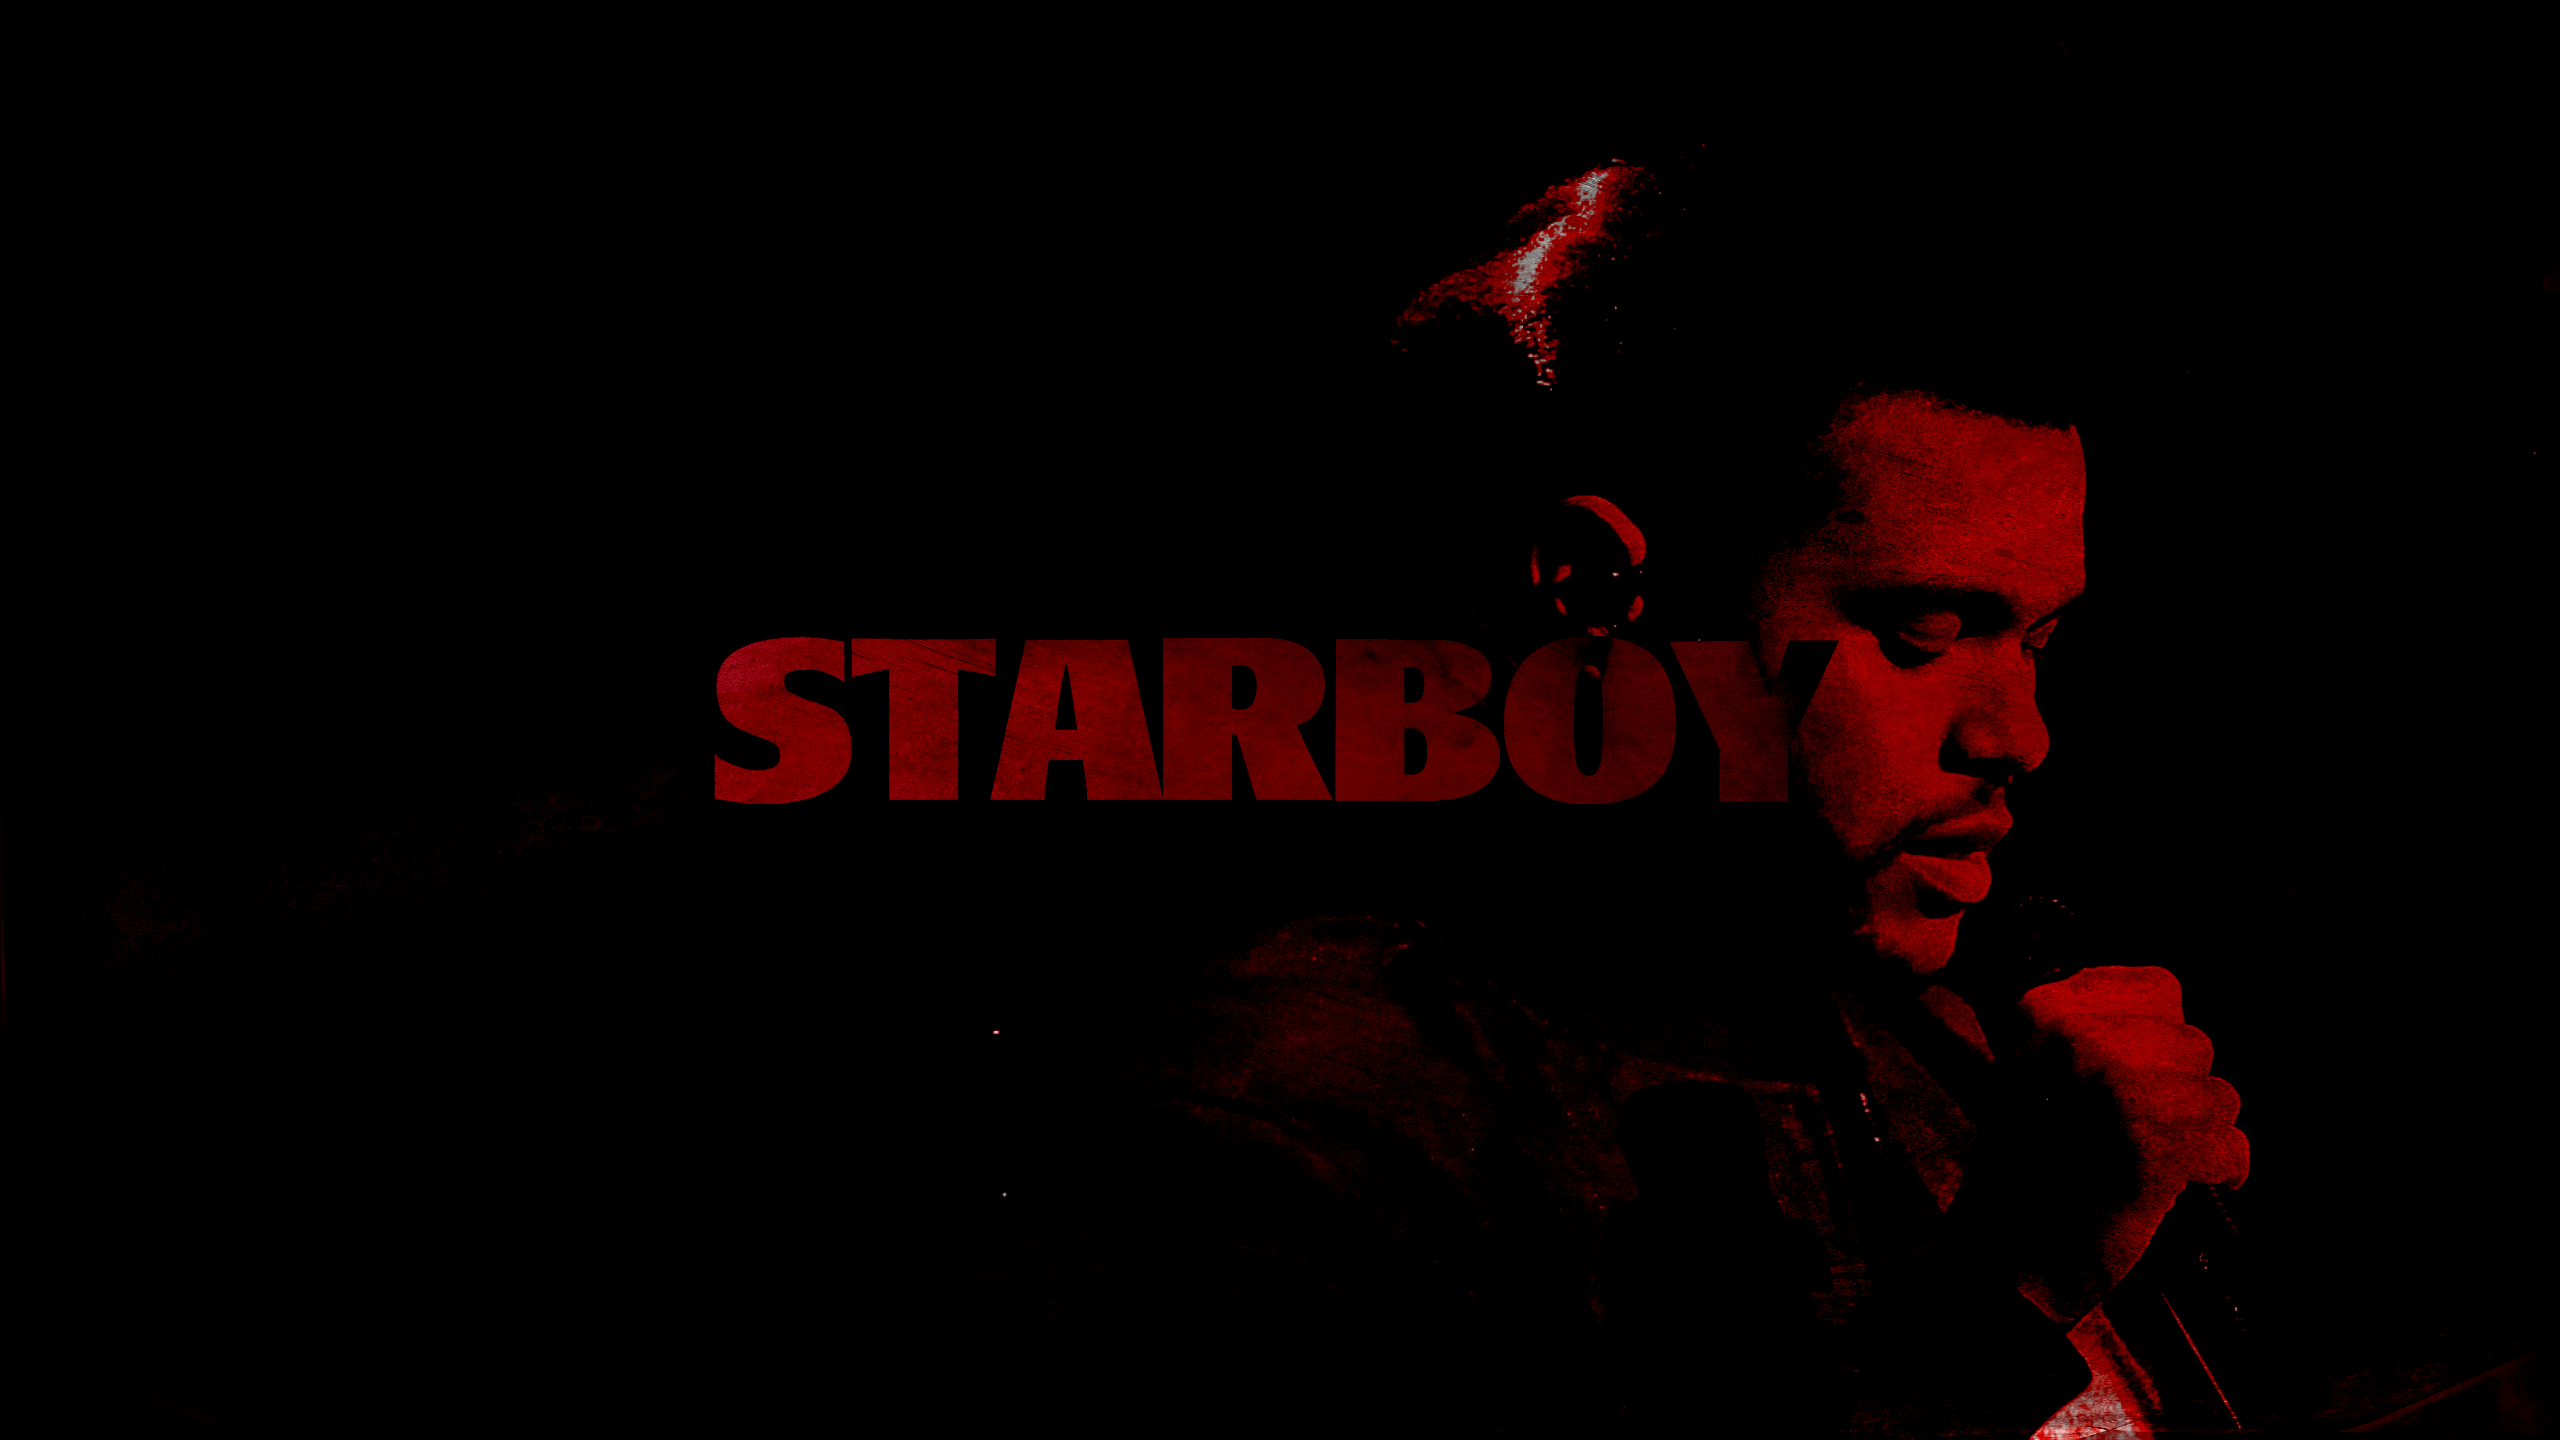 Most Inspiring Wallpaper Mac The Weeknd - wp2489853  Photograph_98288.png